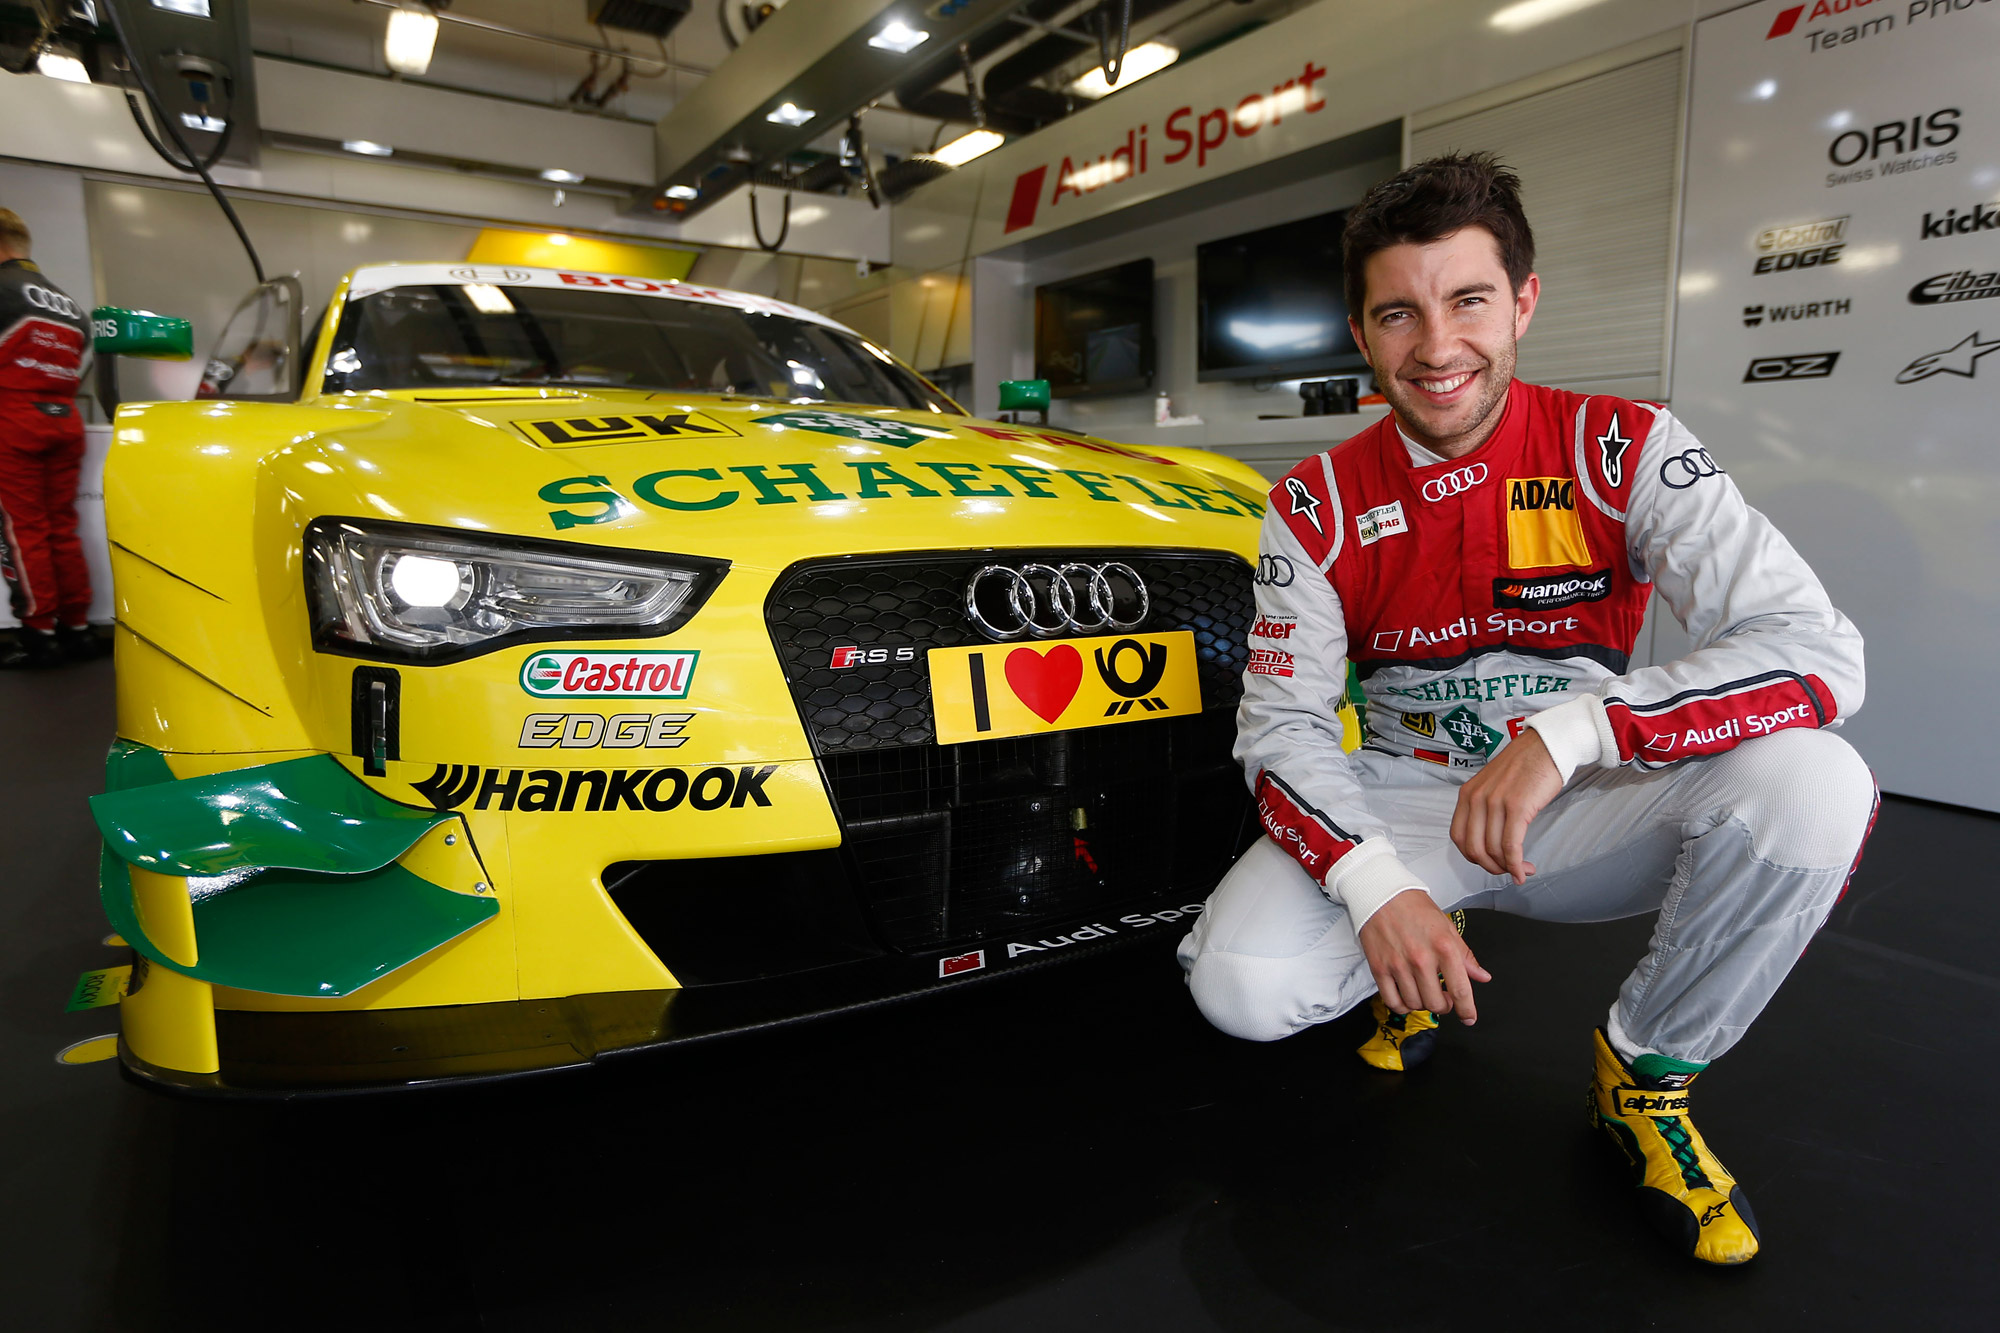 Audi_Rockenfeller_endorsement-web.jpg